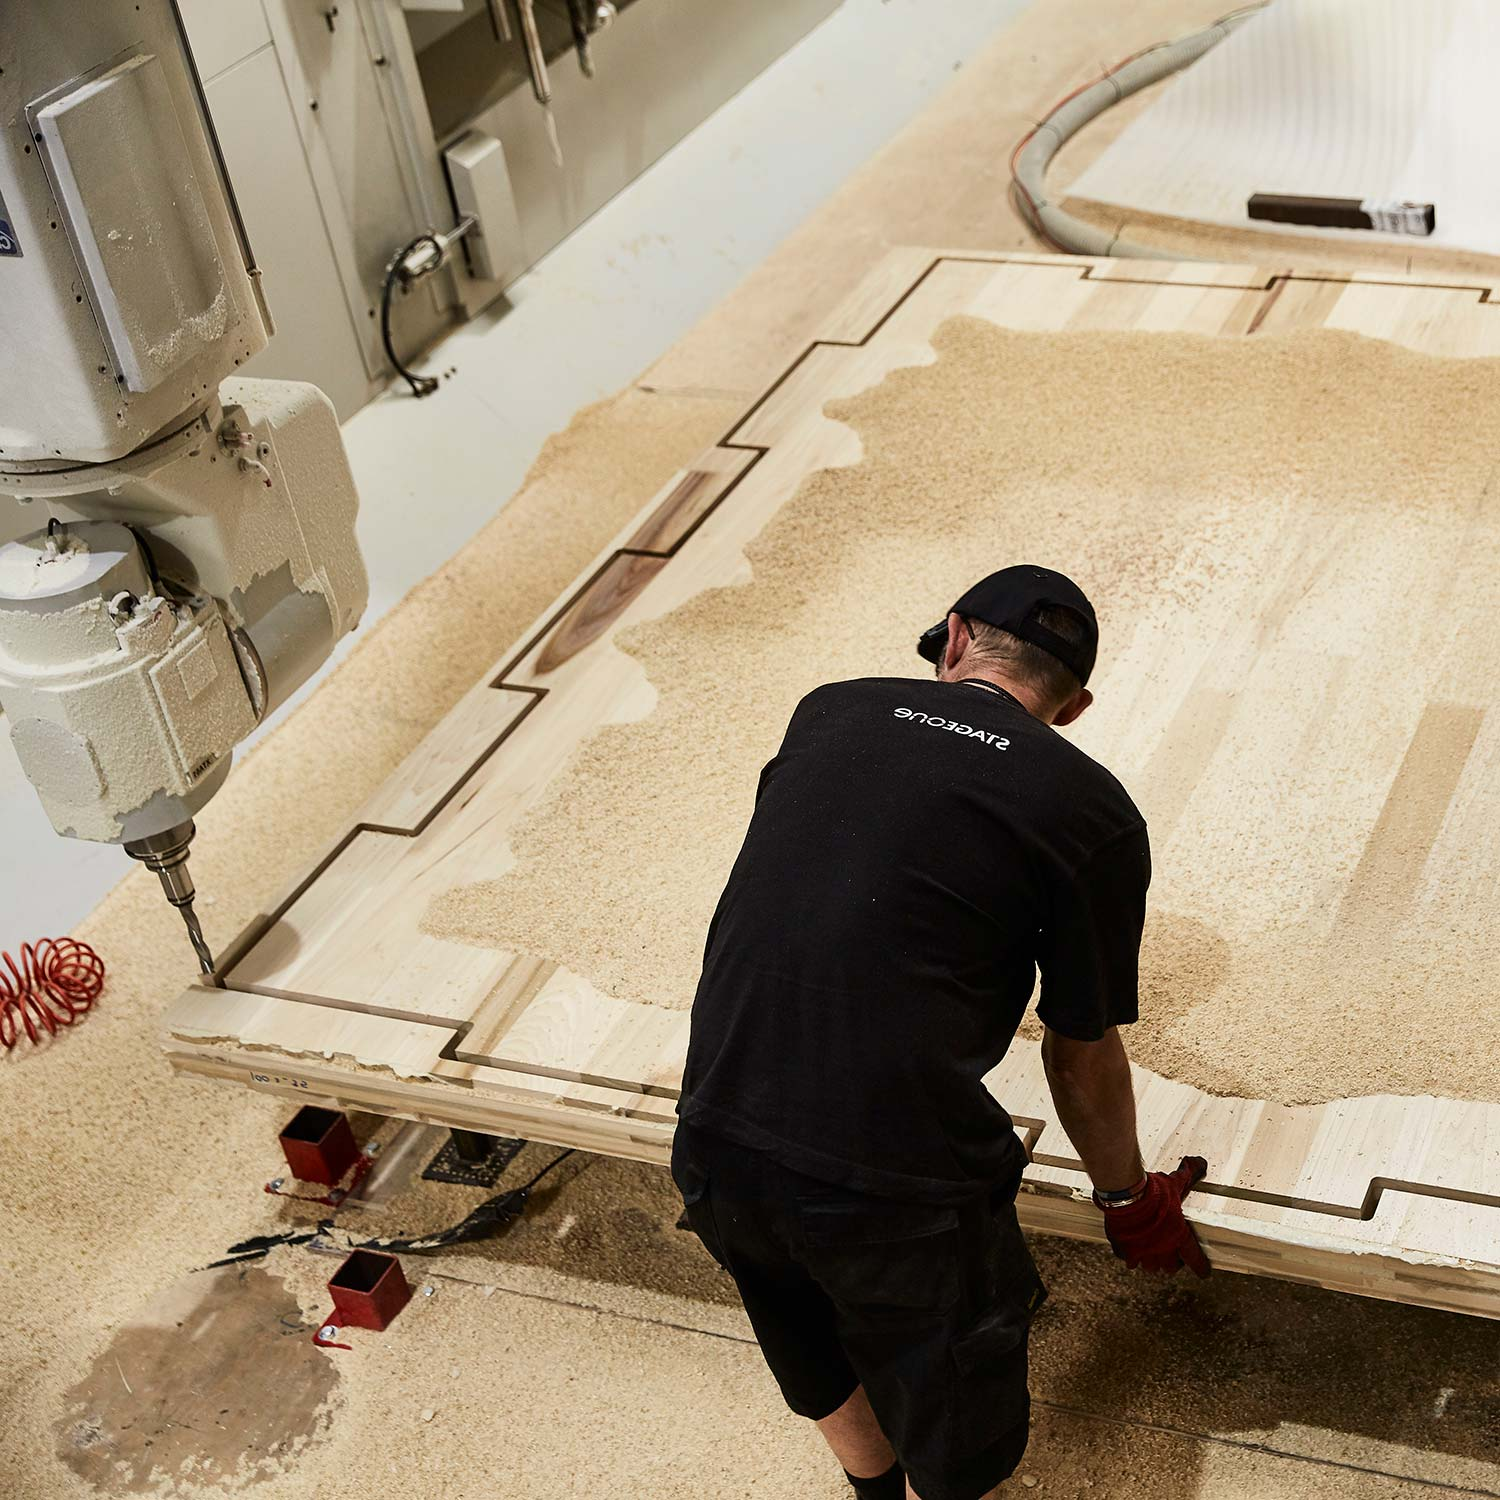 A worker fabricating a sheet of timber in the workshop through parametric design